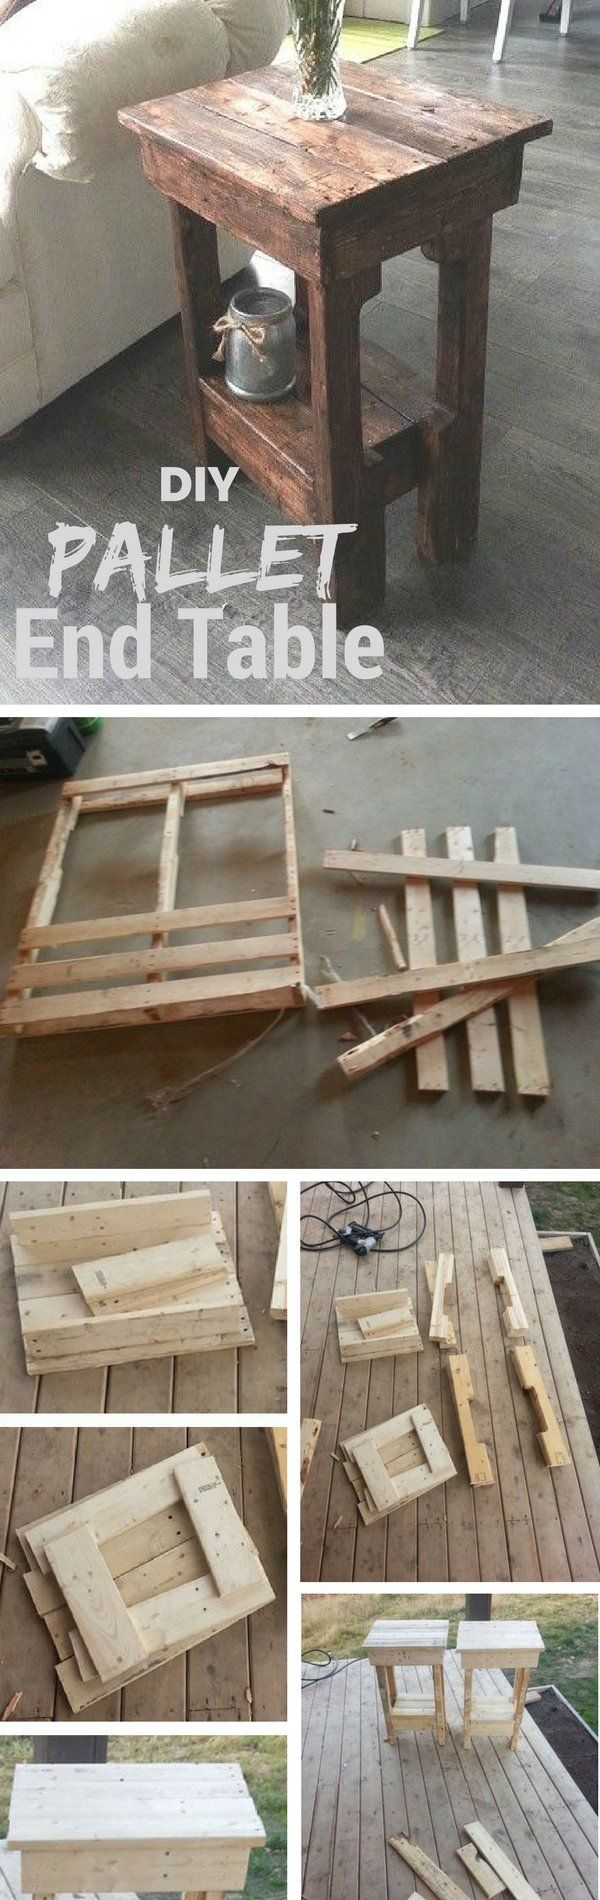 15 easy diy tables that you can build on a budget pallet wood 15 easy diy tables that you can build on a budget geotapseo Image collections